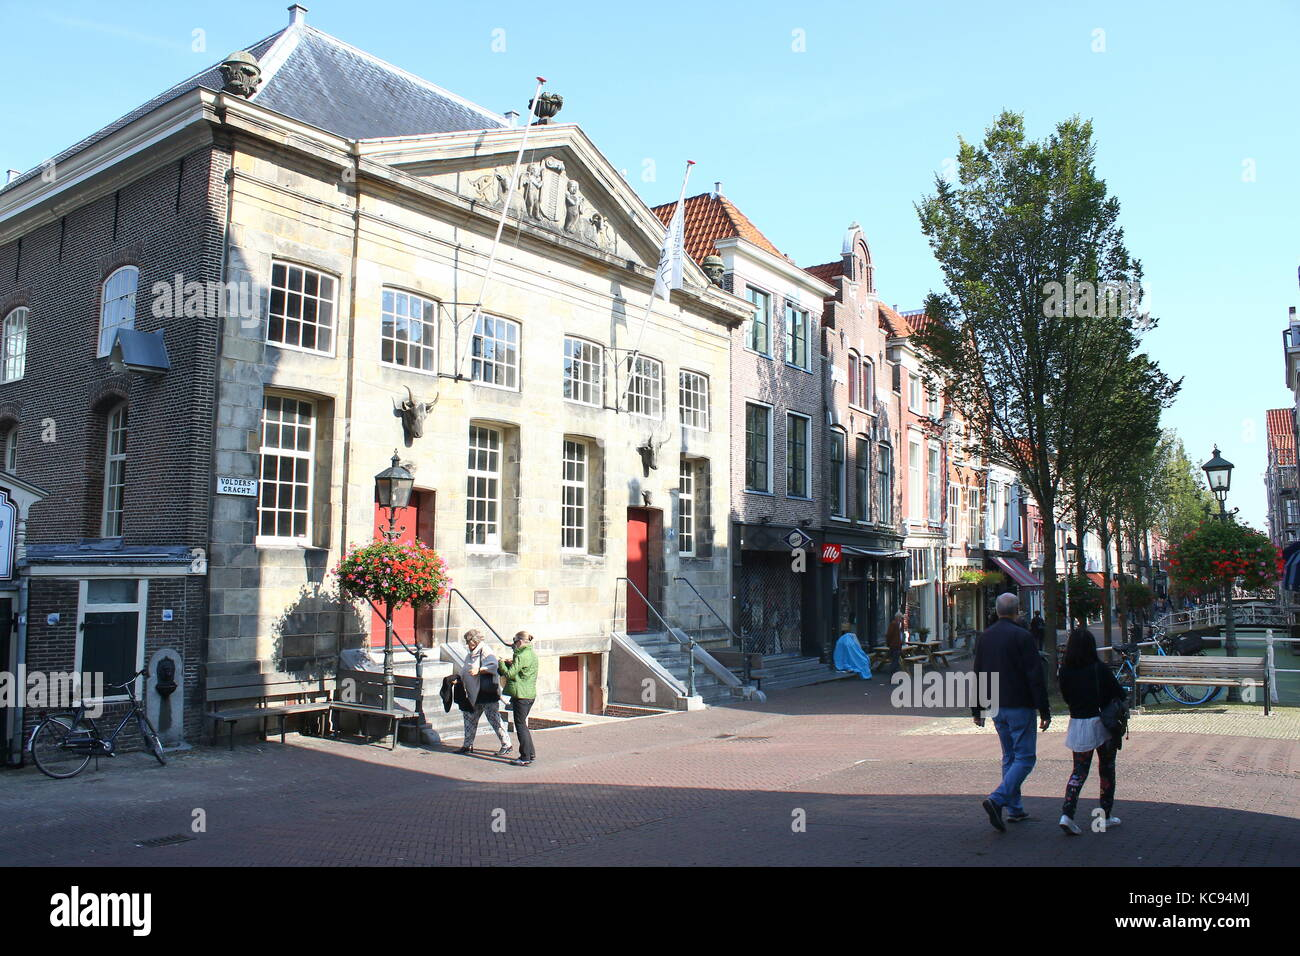 17th century Koornbeurs (Corn exchange) at Voldersgracht street in central Delft, Netherland. Also named Vleeshal - Stock Image